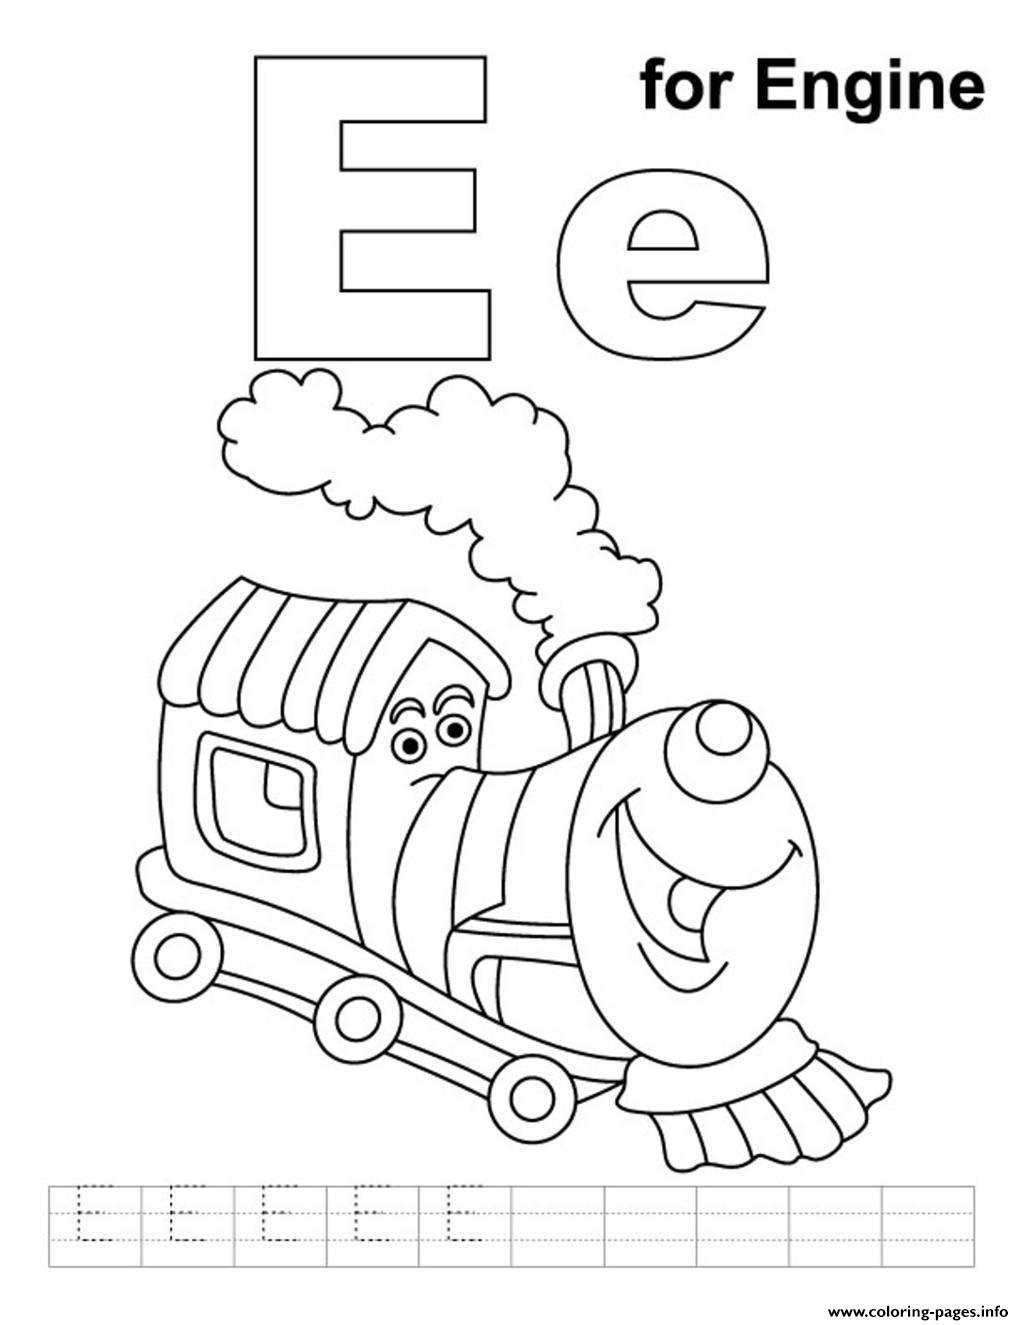 Engine Alphabet S Free762d Coloring Pages Printable